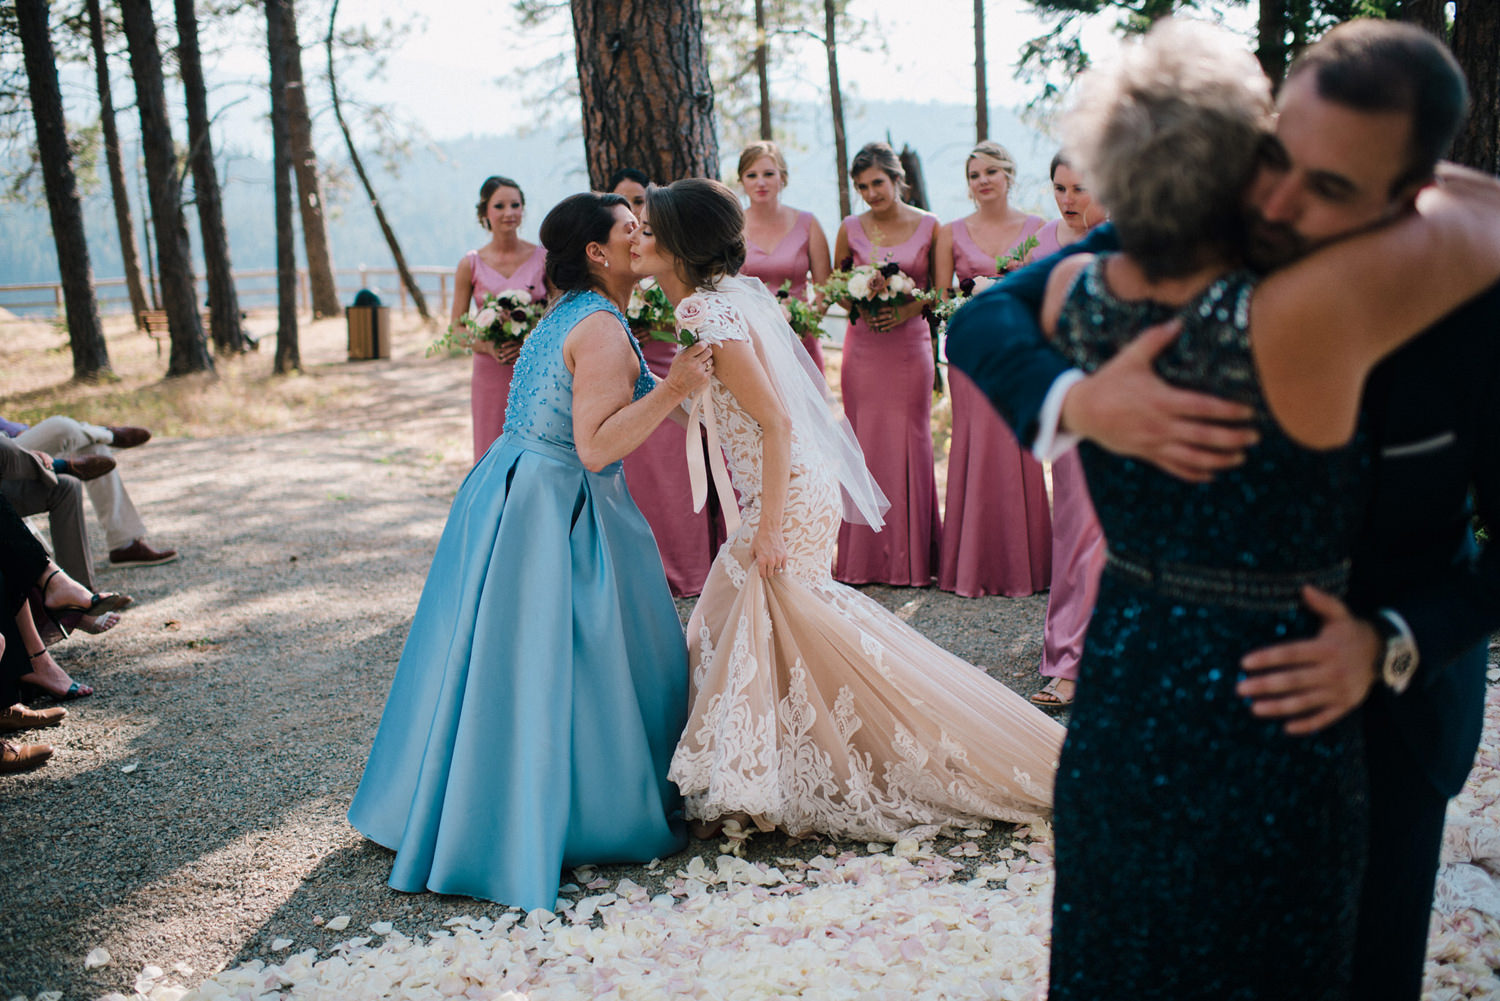 275-bright-coral-wedding-with-sinclair-and-moore-at-suncadia-resort.jpg